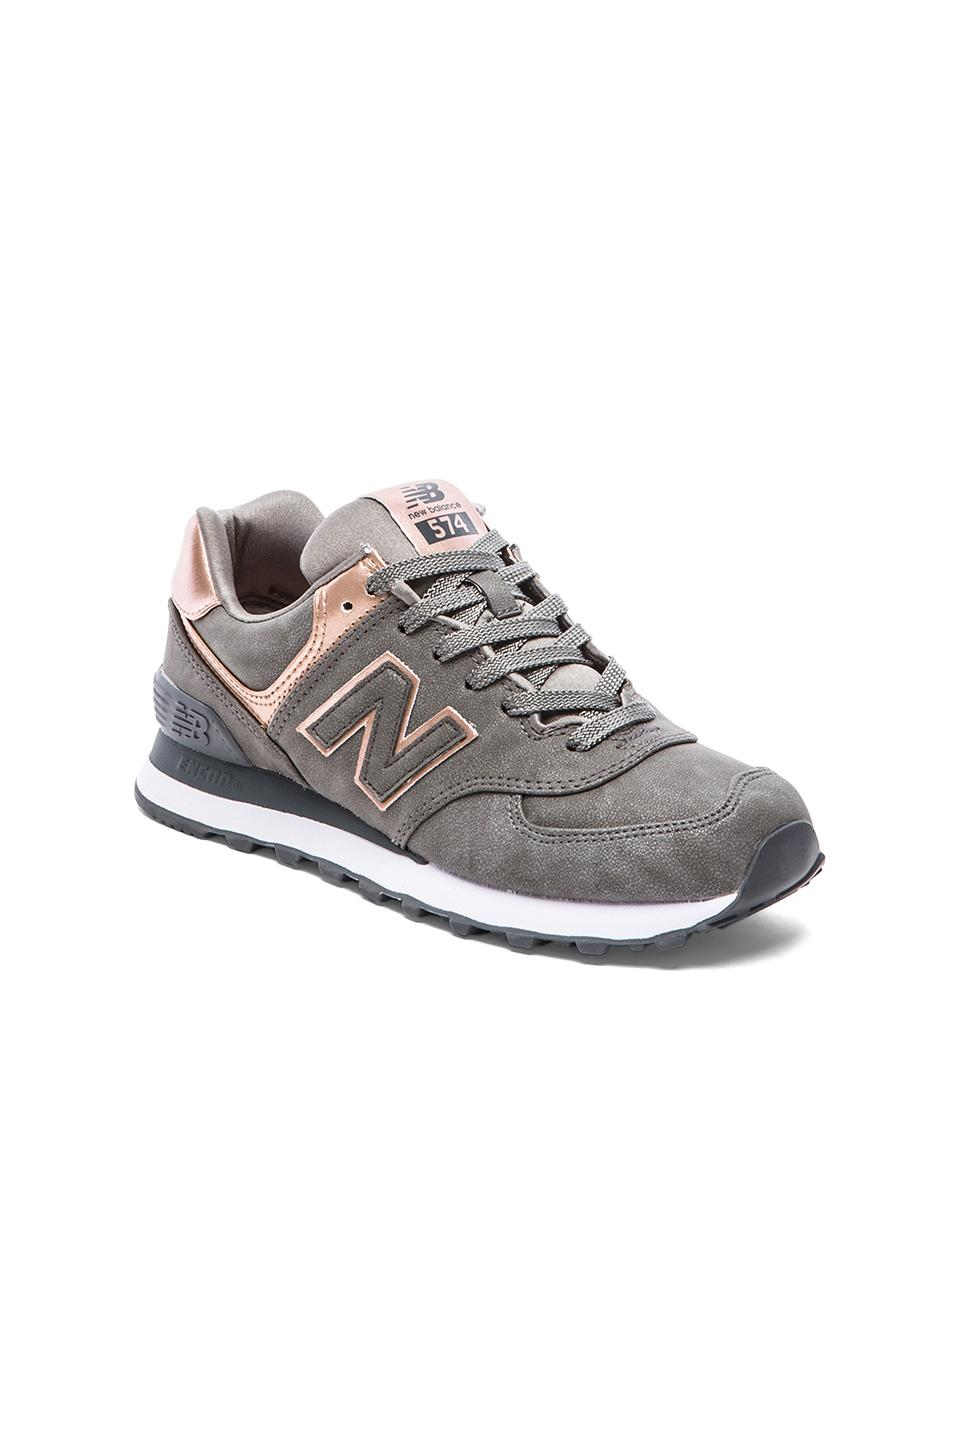 New Balance Metallic Gris